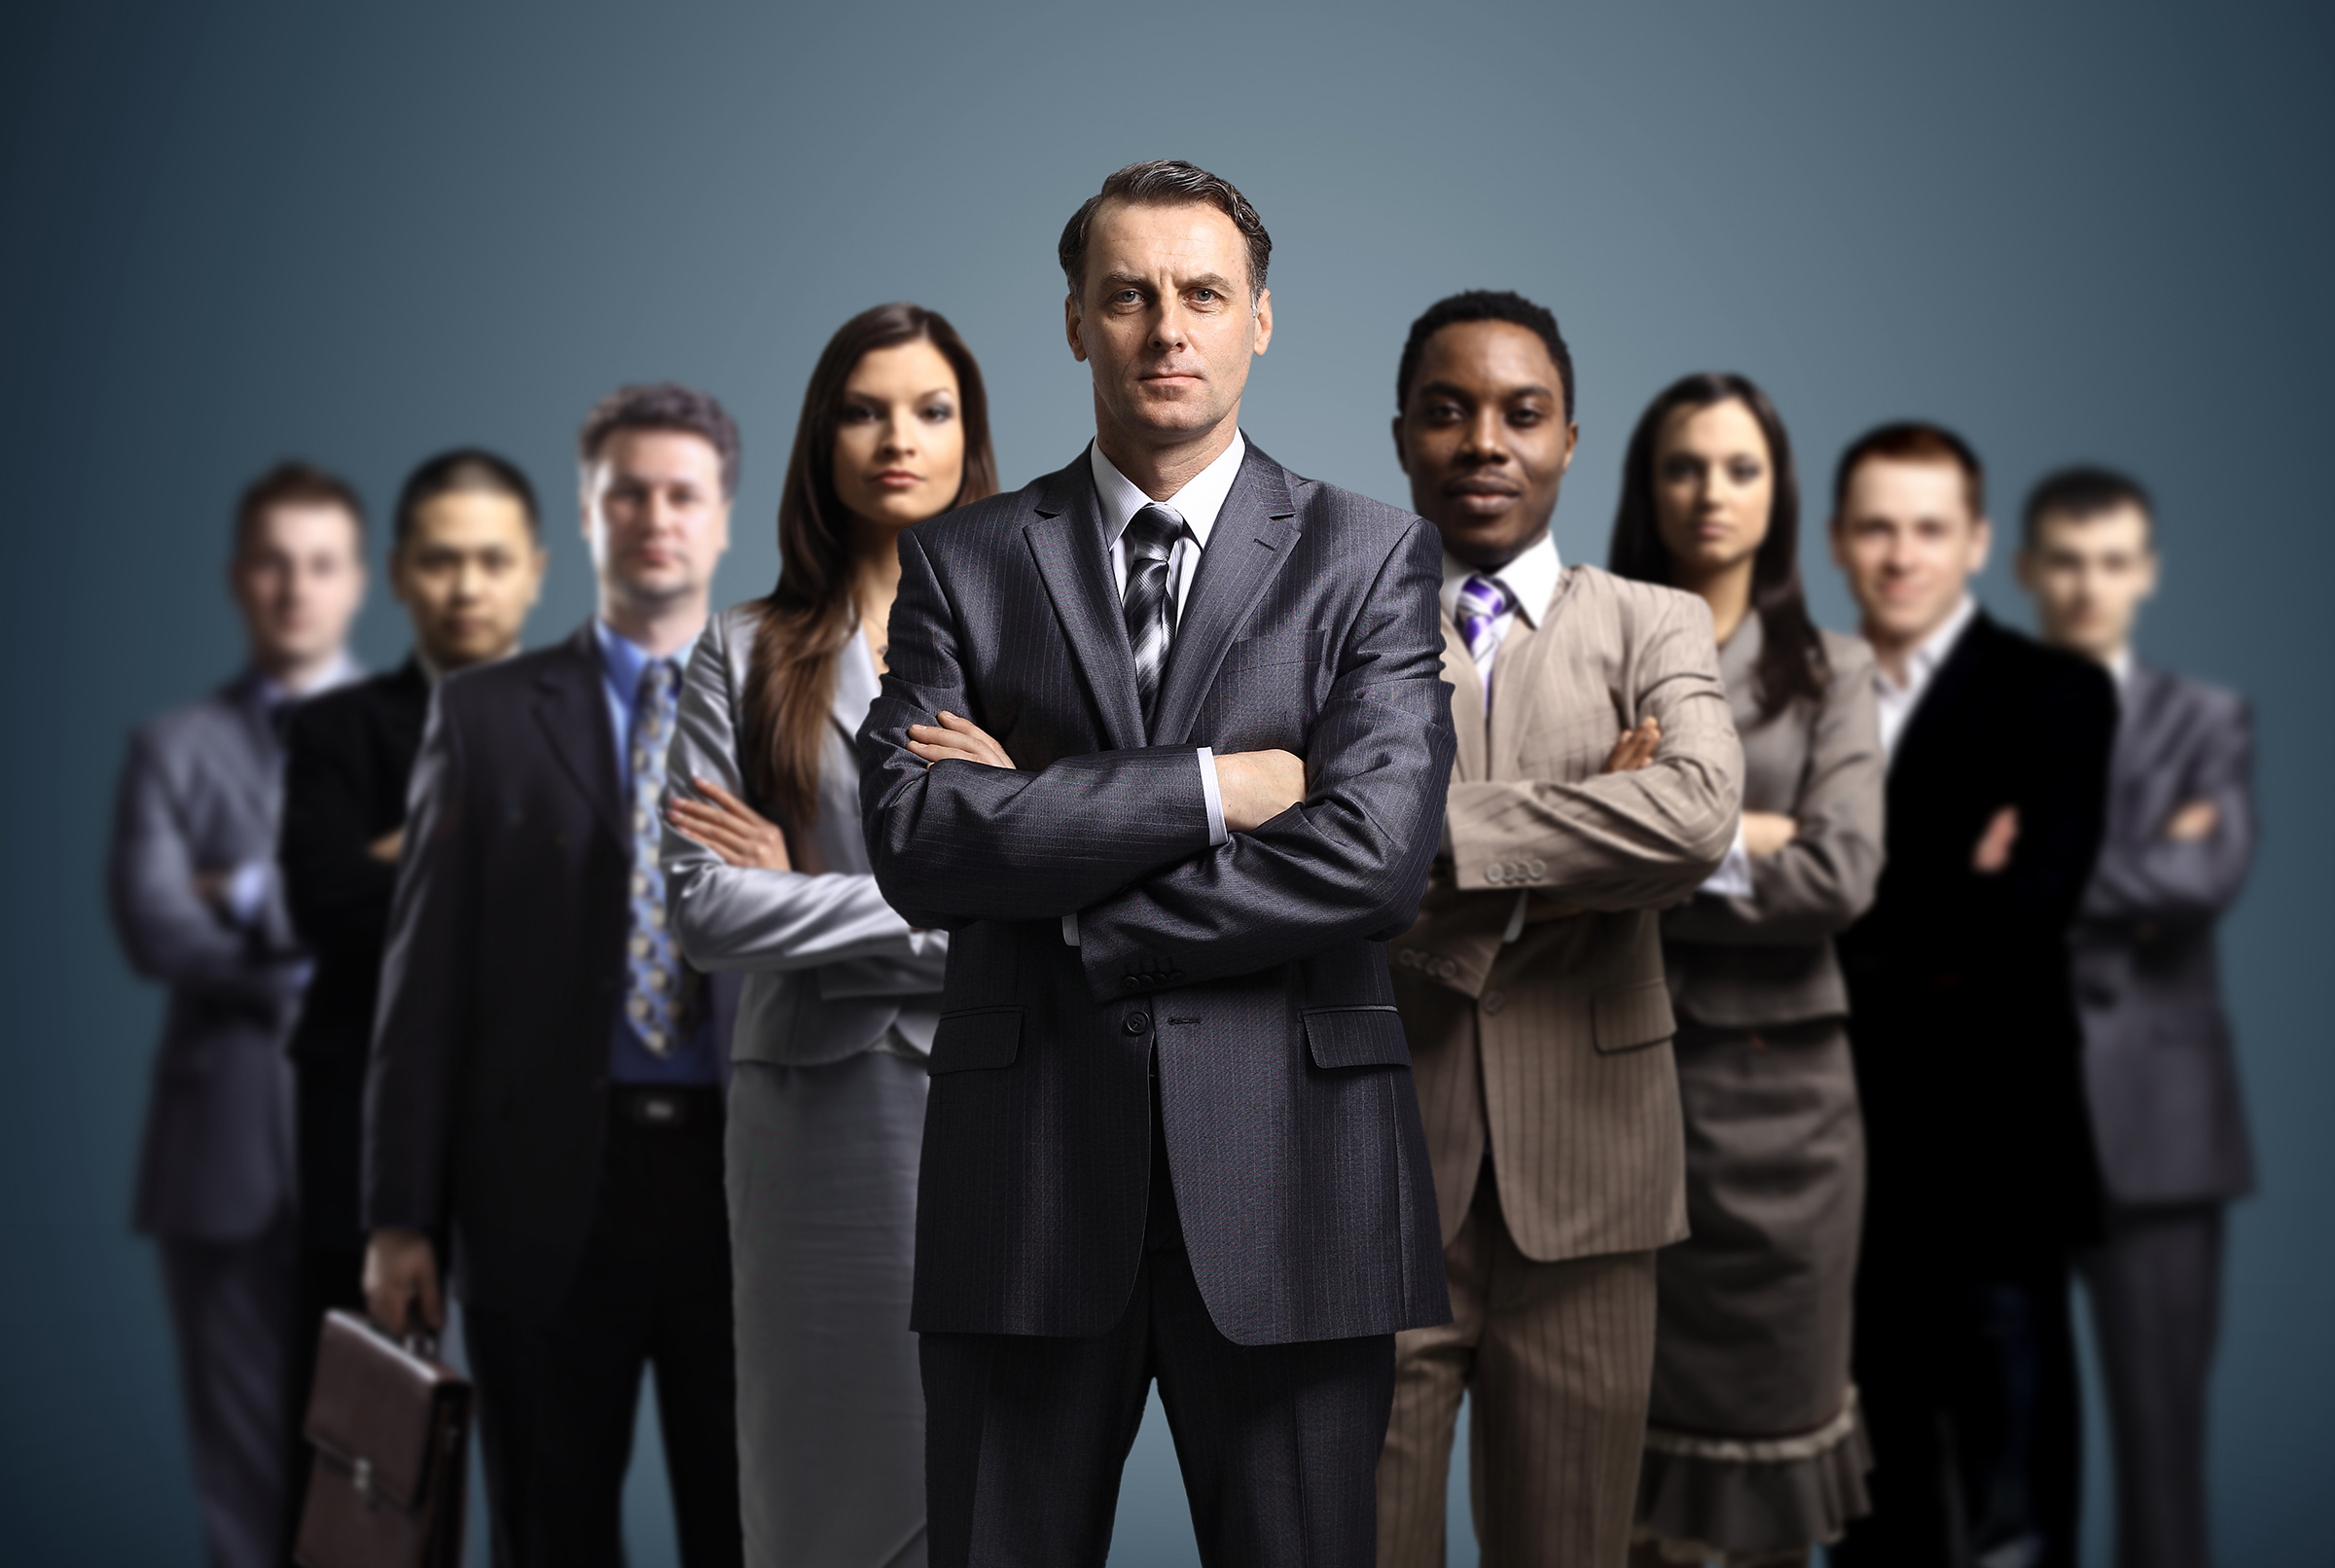 success story 02 showing an arrow arrangement with a variety of executives having their arms crossed exuding confidence, trust, and seriousness